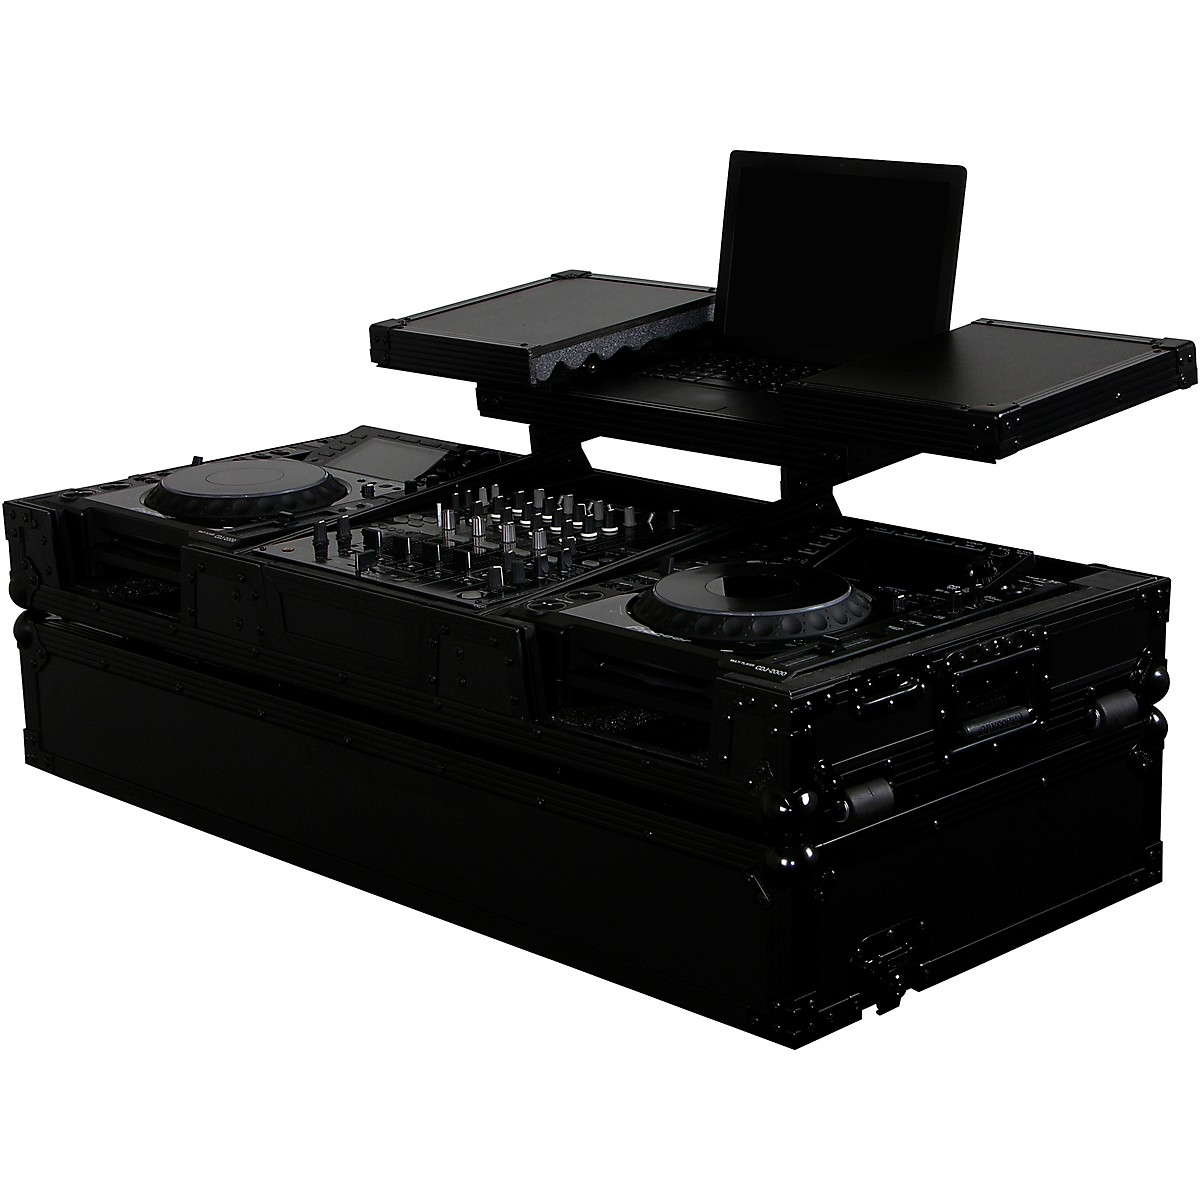 Odyssey Double Deluxe Combo Rack 11u over 16u with two side tables & wheels